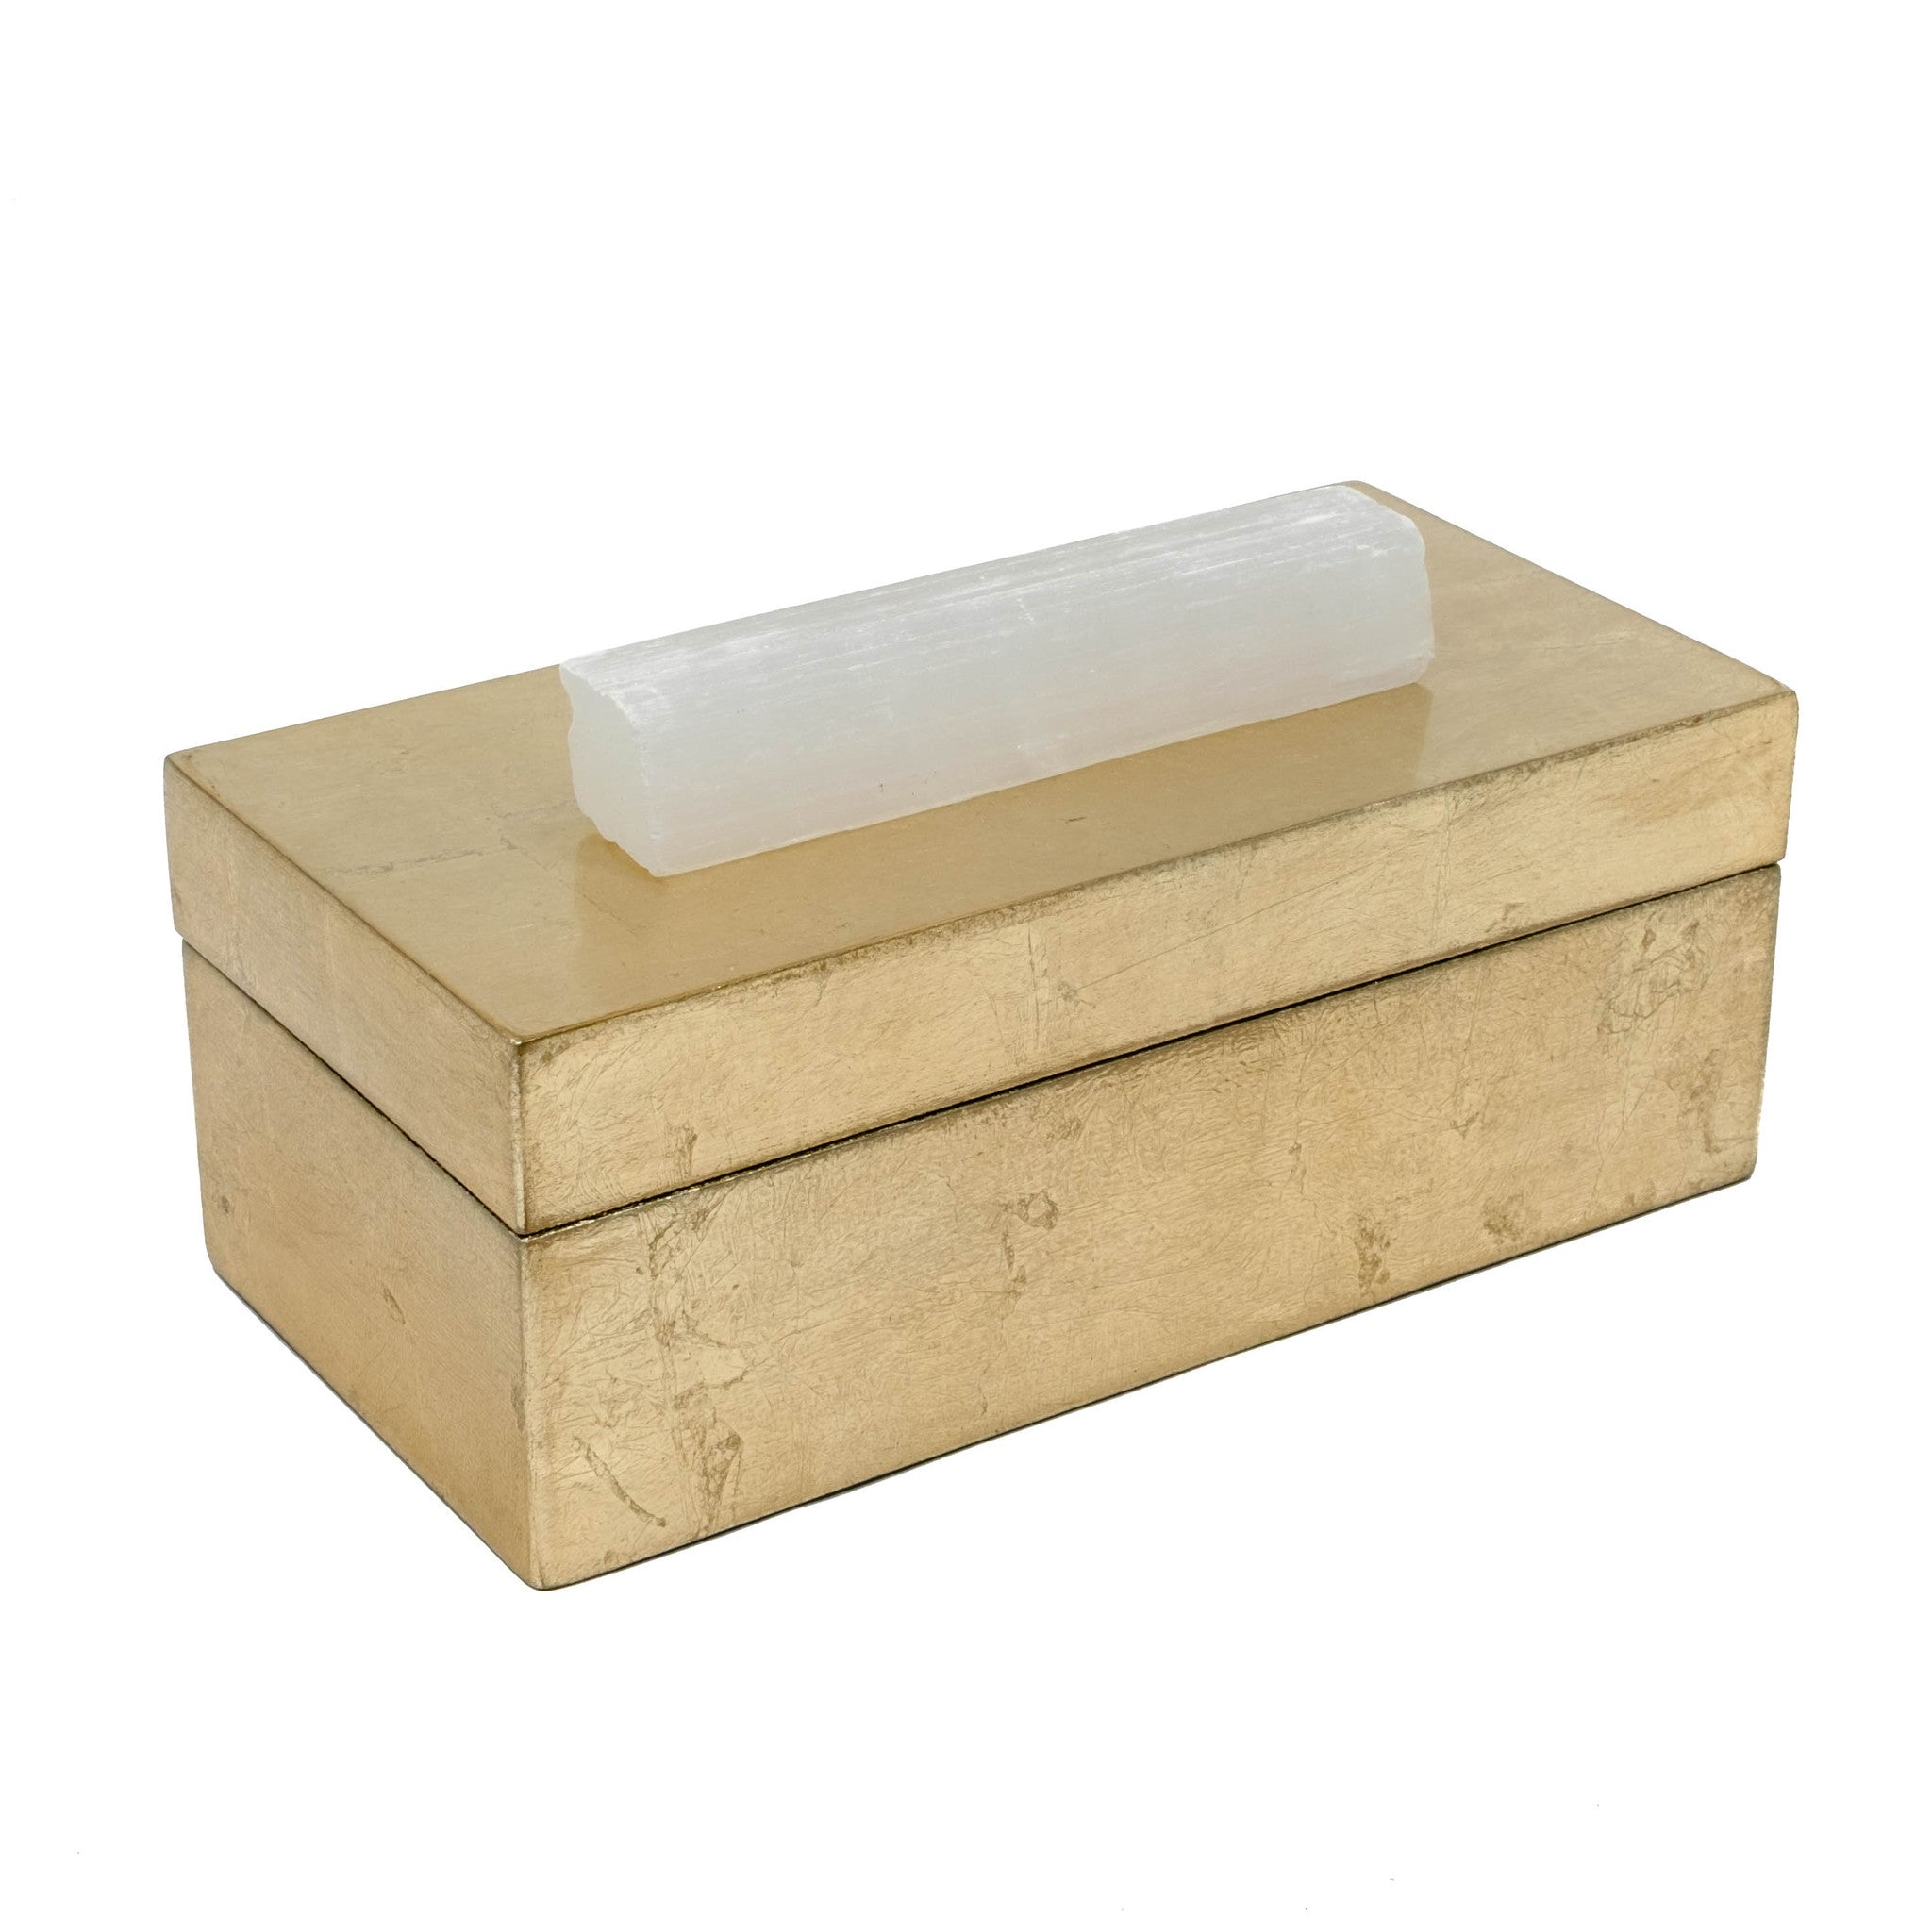 gold box with selenite crystal for your jewelry.